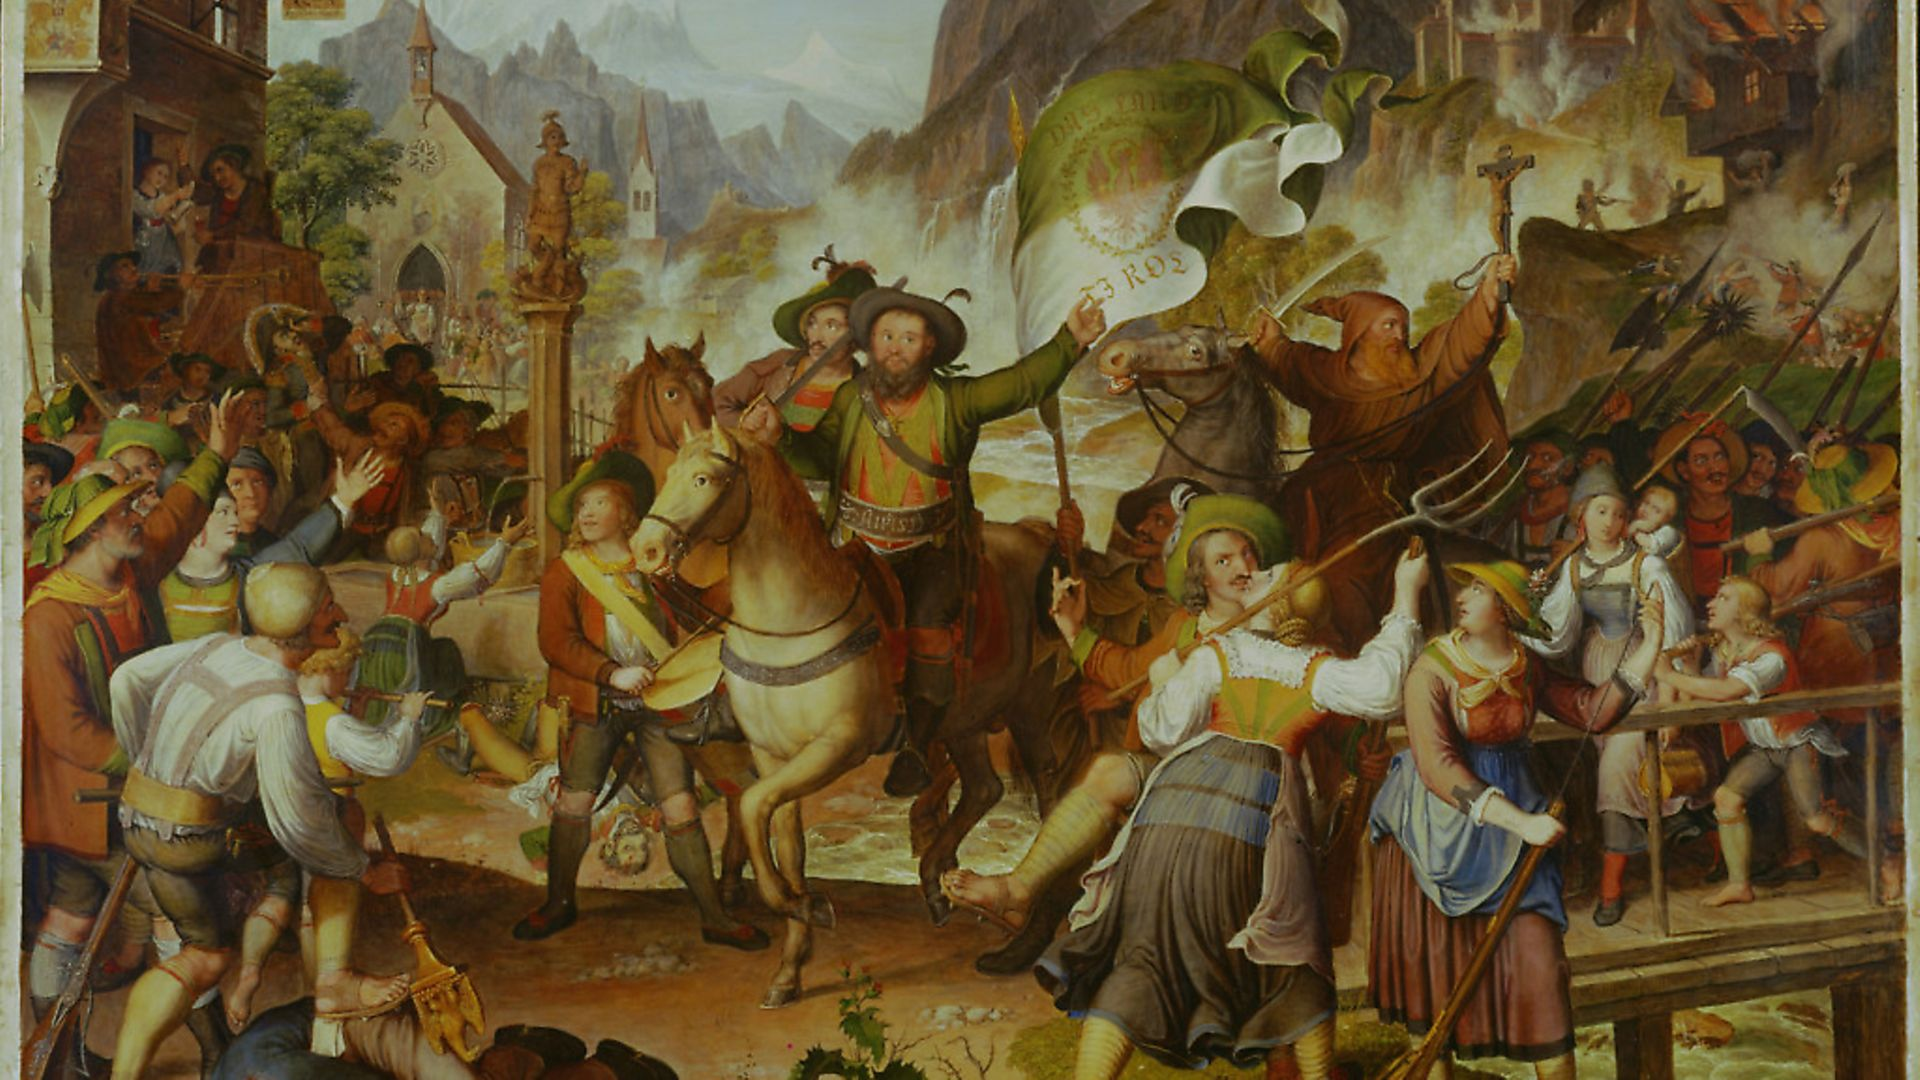 Tyrolean militia 1809. In the center Andreas Hofer, leader of the Tyrolean resistance to Napoleon, painted 1819. Picture: Getty Images - Credit: Getty Images